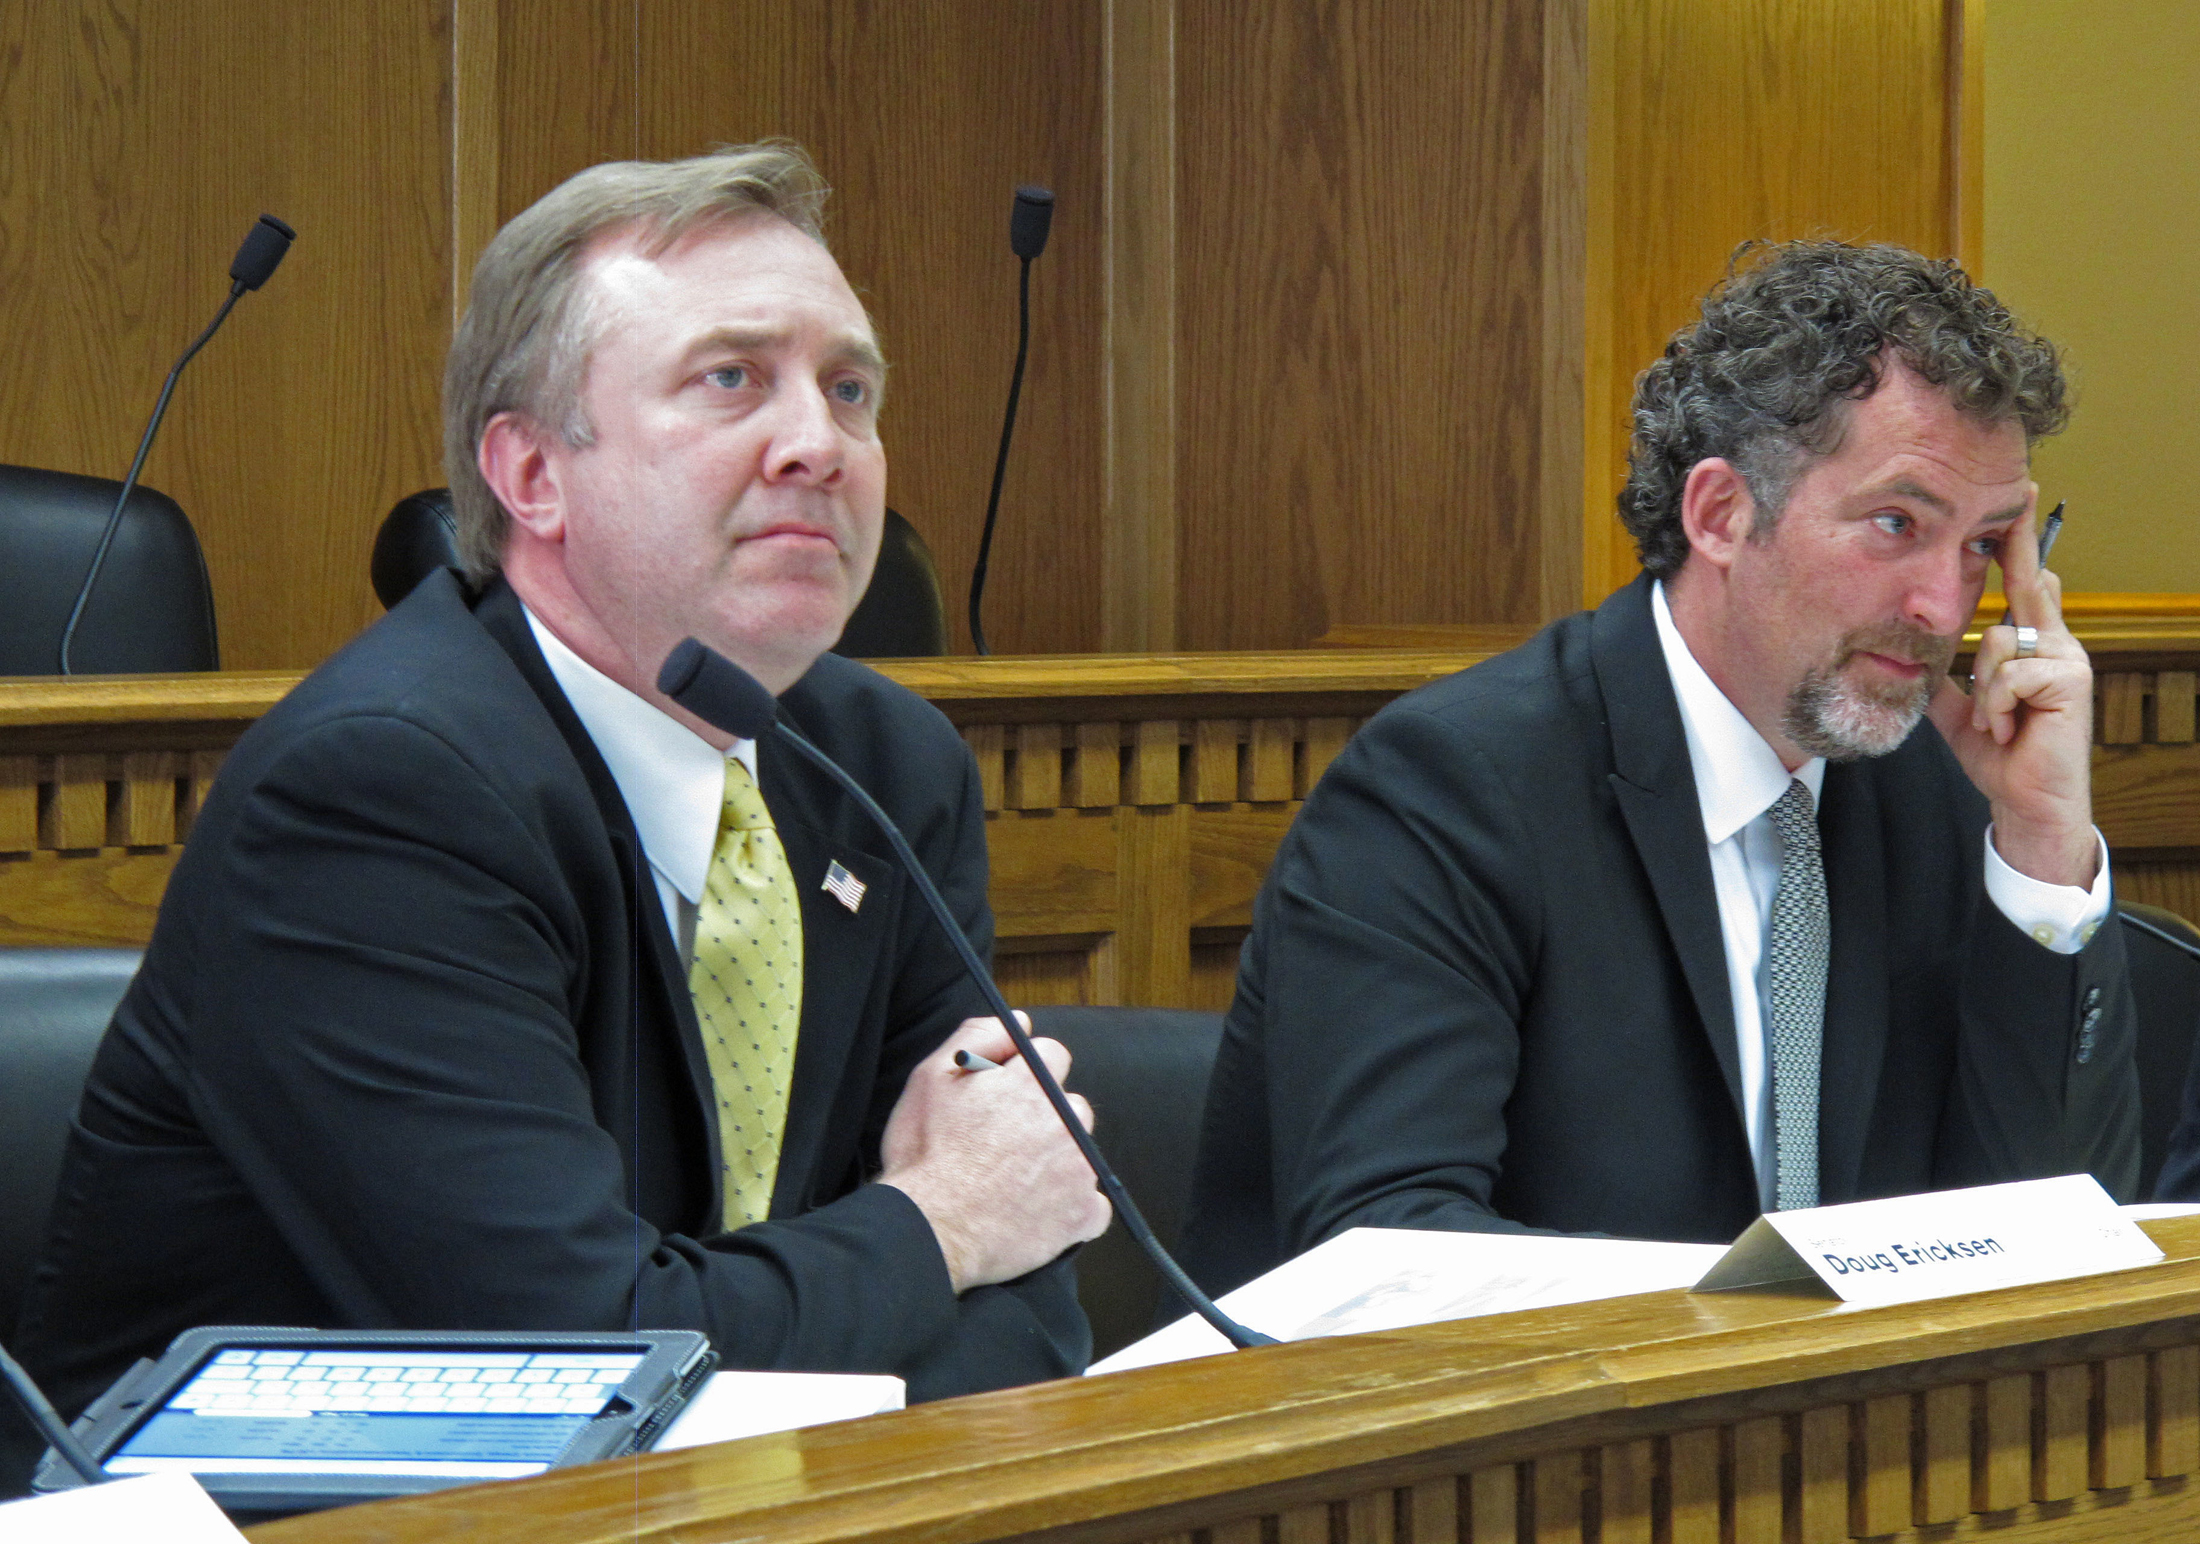 In this March 26, 2013 file photo, Republican state Sen. Doug Ericksen, left, and Democratic state Sen. Kevin Ranker listen to testimony from a climate change skeptic at a hearing in Olympia, Wash. Environmentalists are bracing for court battles over what they fear will be an unprecedented wave of rollbacks on policies concerning climate change. (Rachel La Corte/AP)